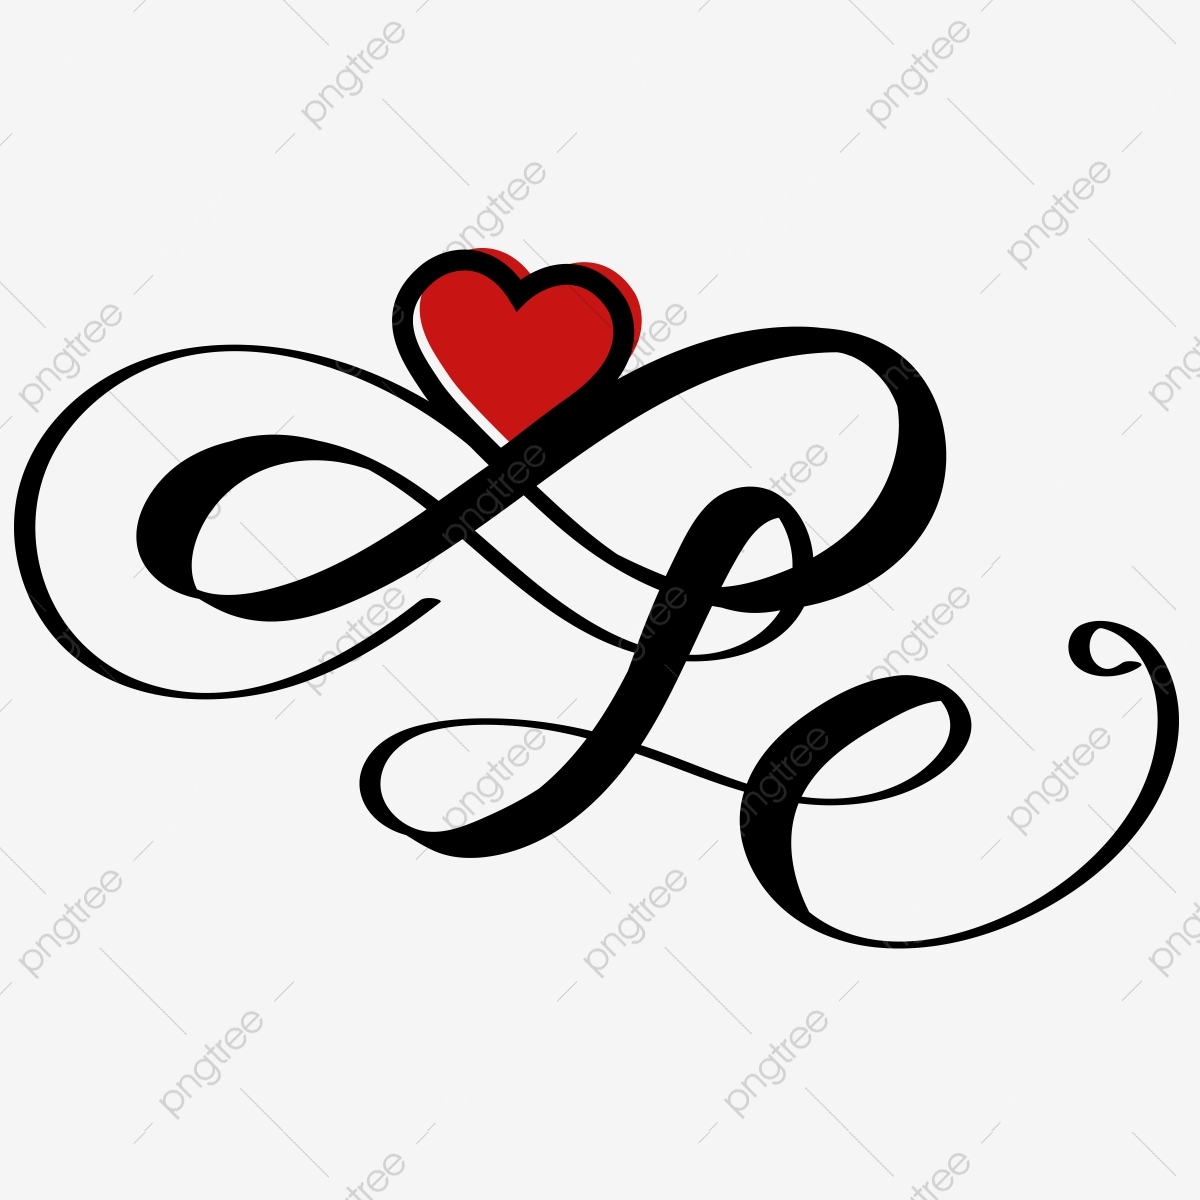 Infinity Heart Png Images Vector And Psd Files Free Download On Pngtree